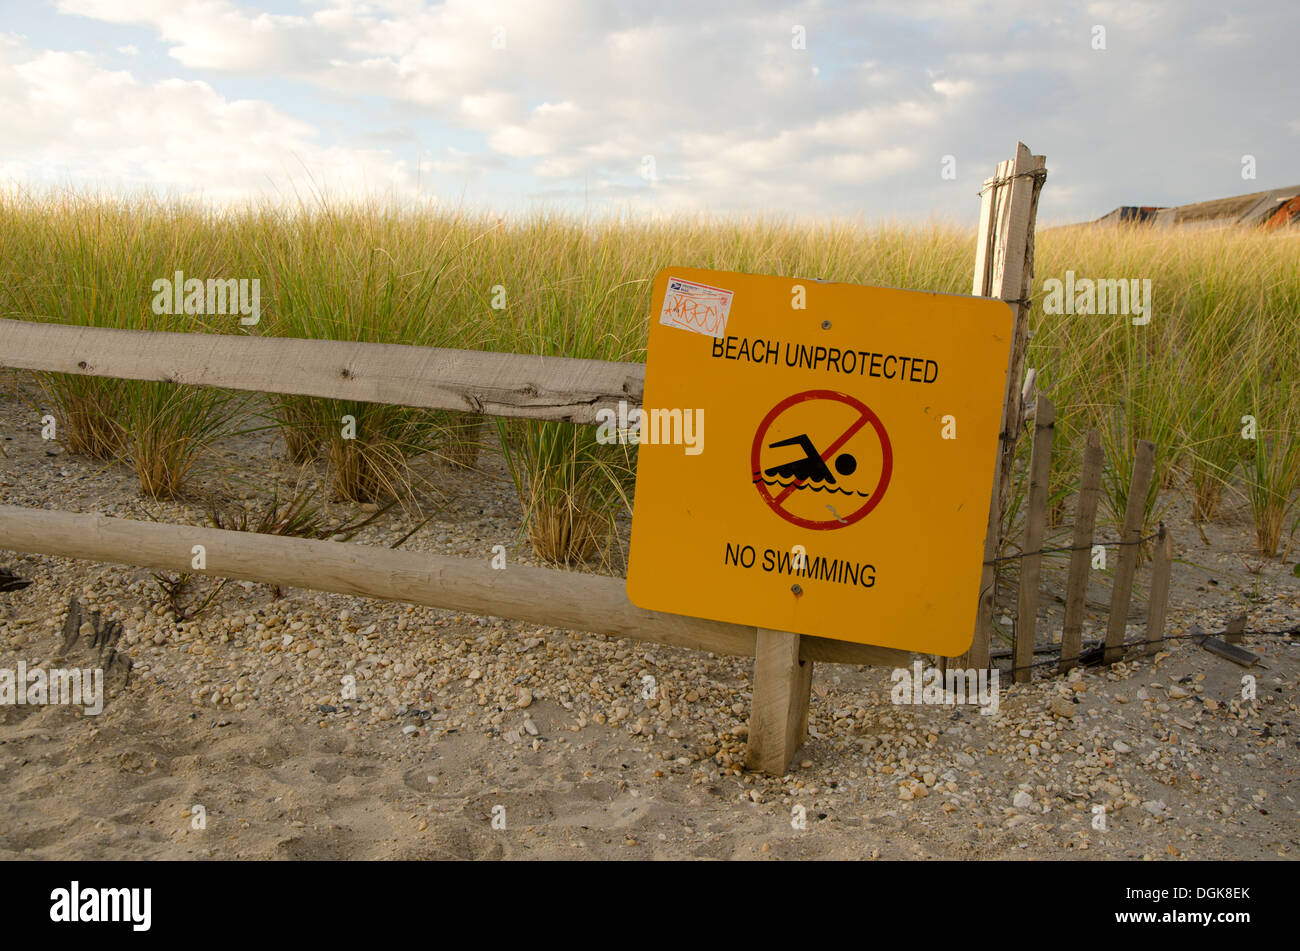 Beach unprotected, no swimming sign. - Stock Image